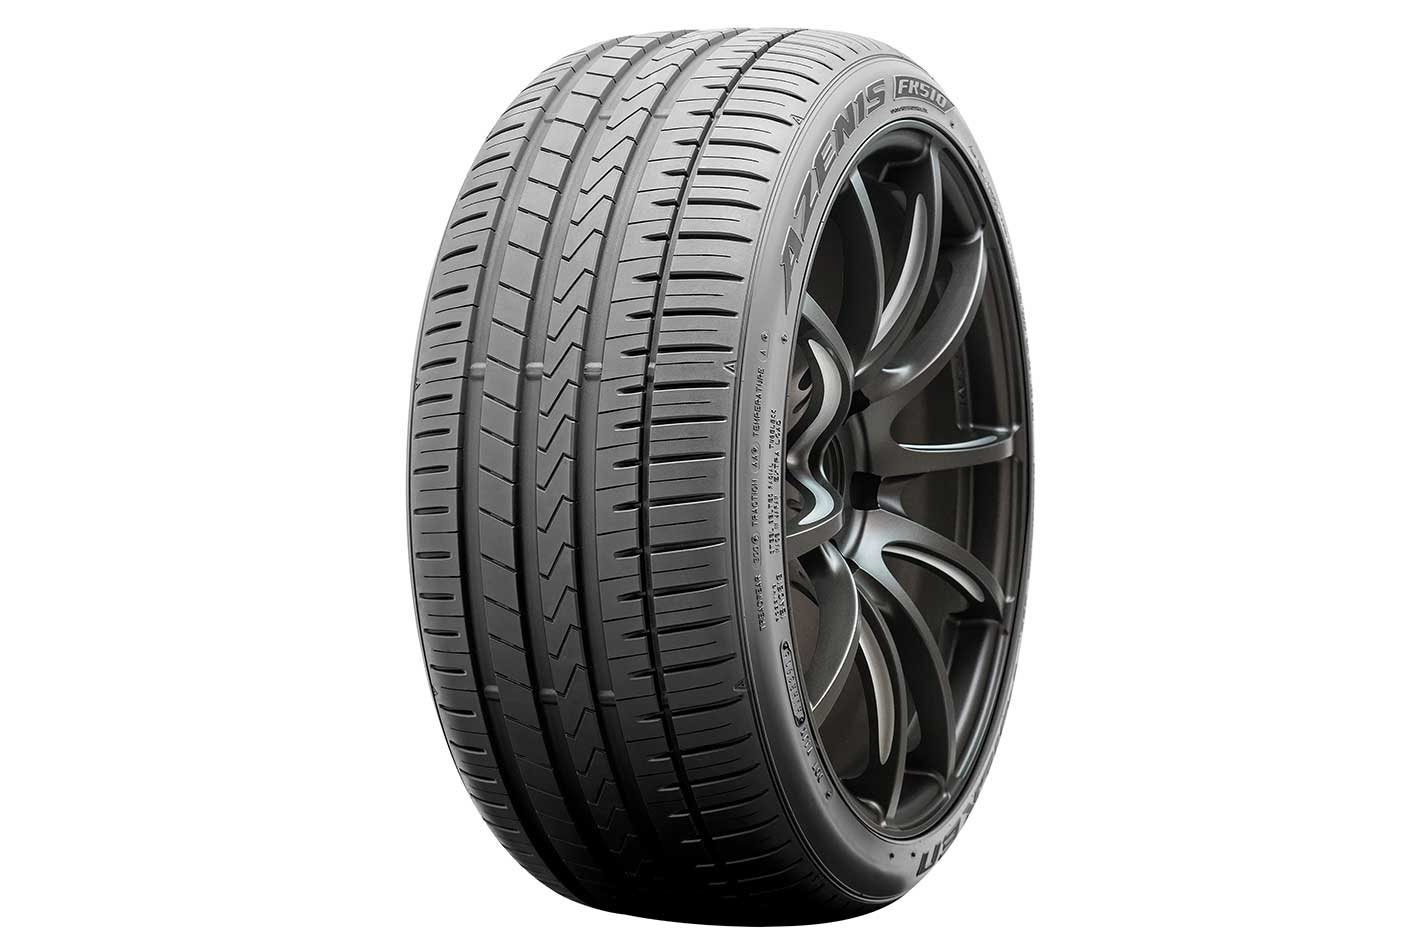 falken azenis fk510 performance tyre review. Black Bedroom Furniture Sets. Home Design Ideas